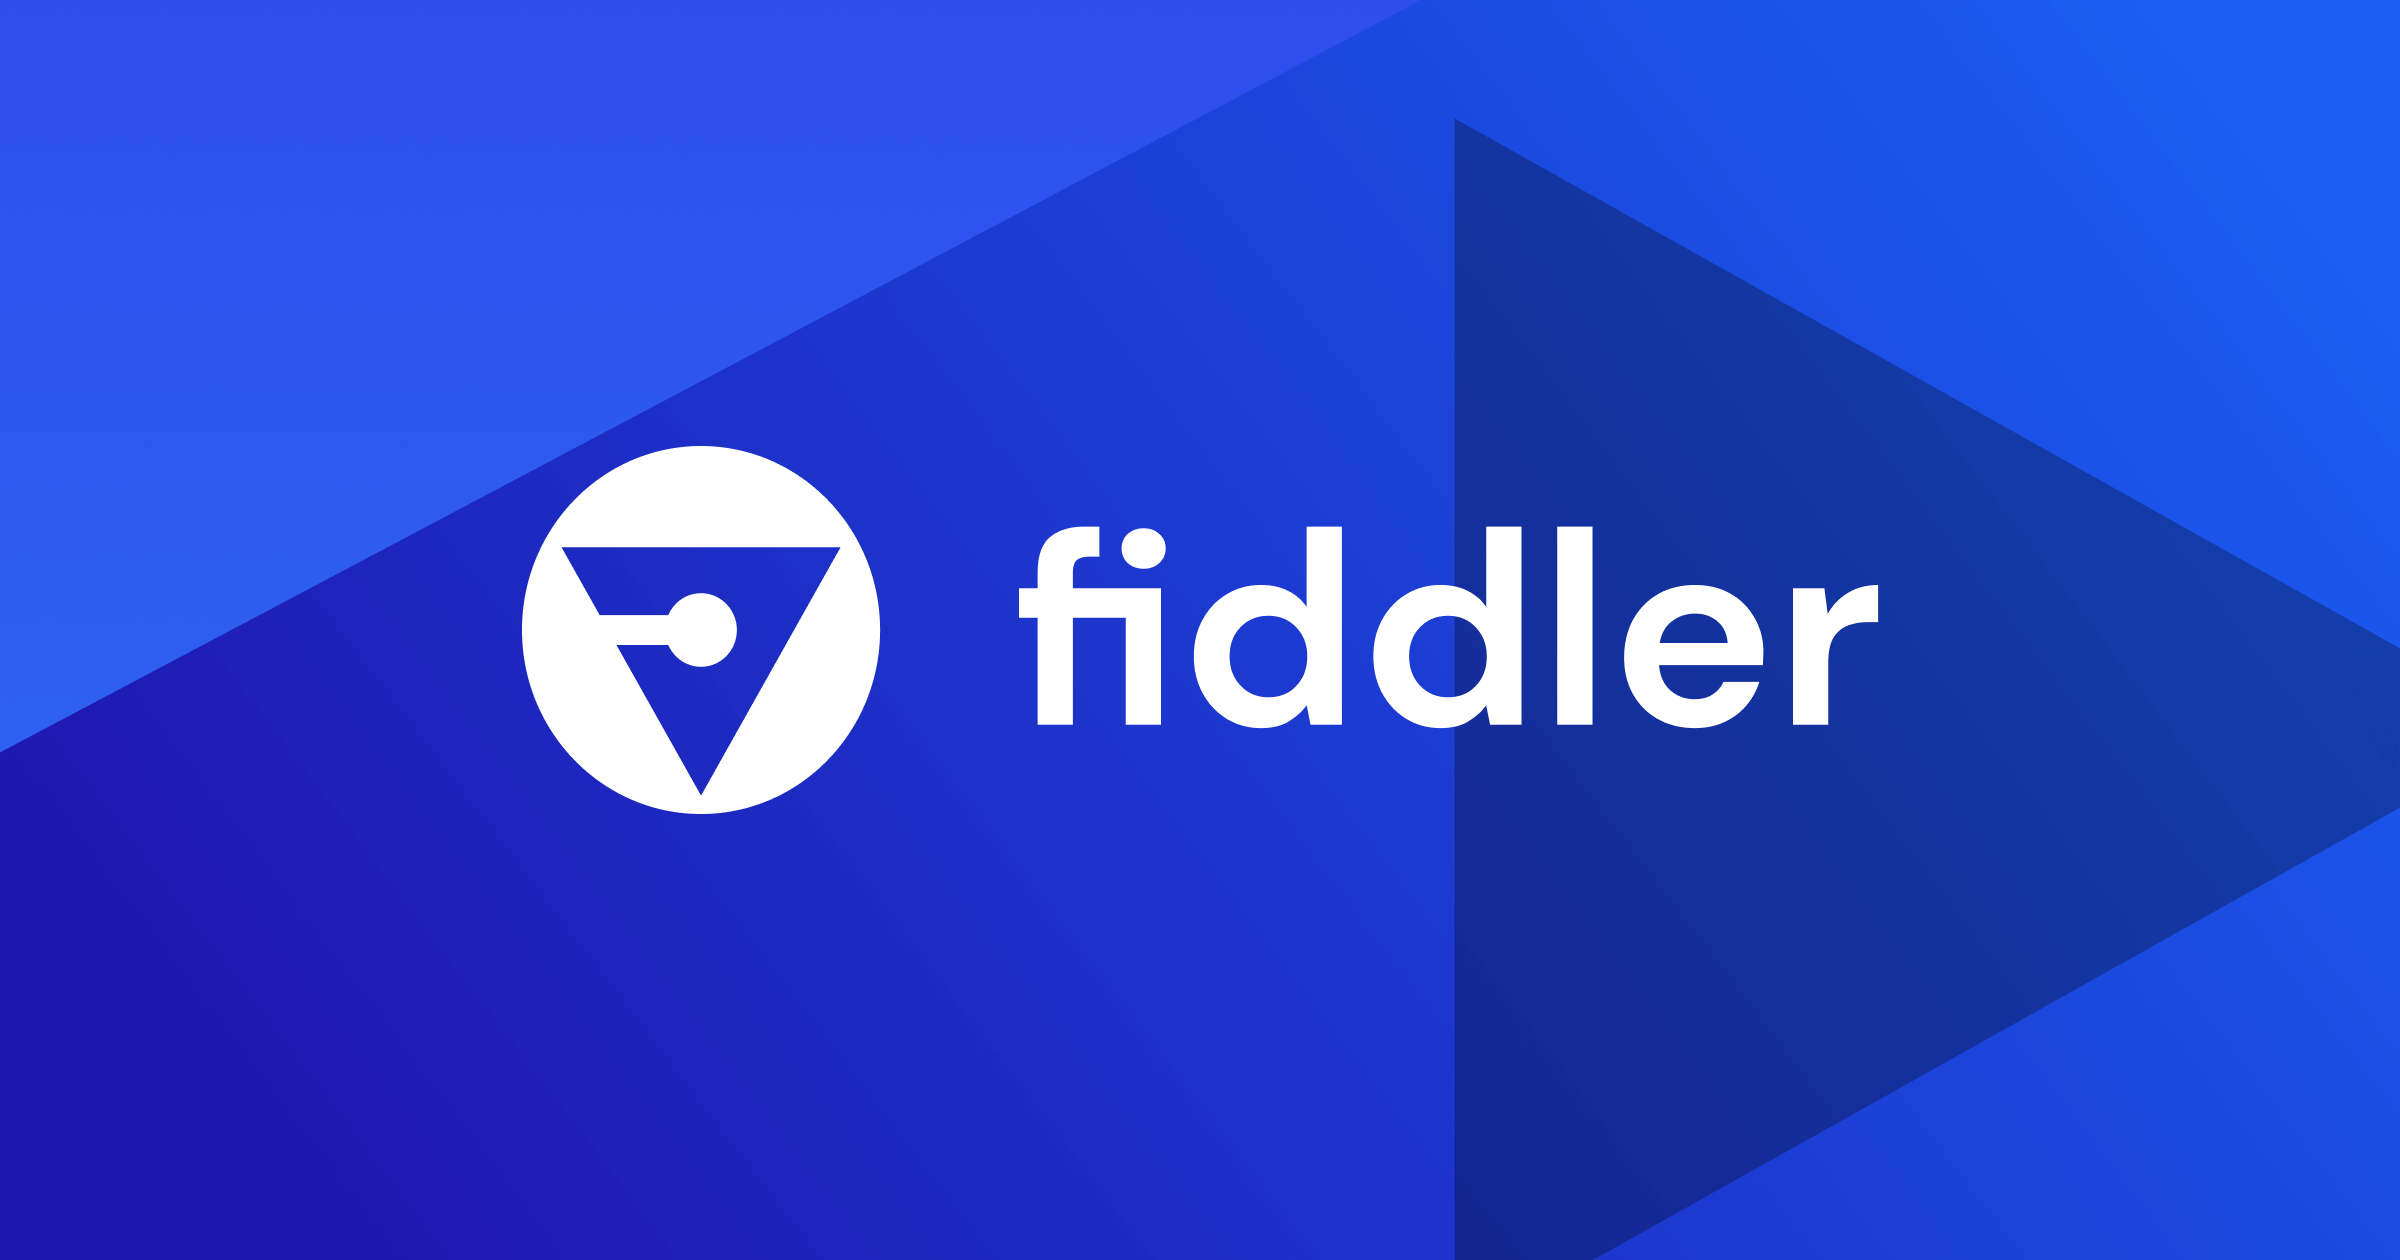 Fiddler Secures Strategic Investment from Amazon Alexa Fund to Accelerate AI Explainability